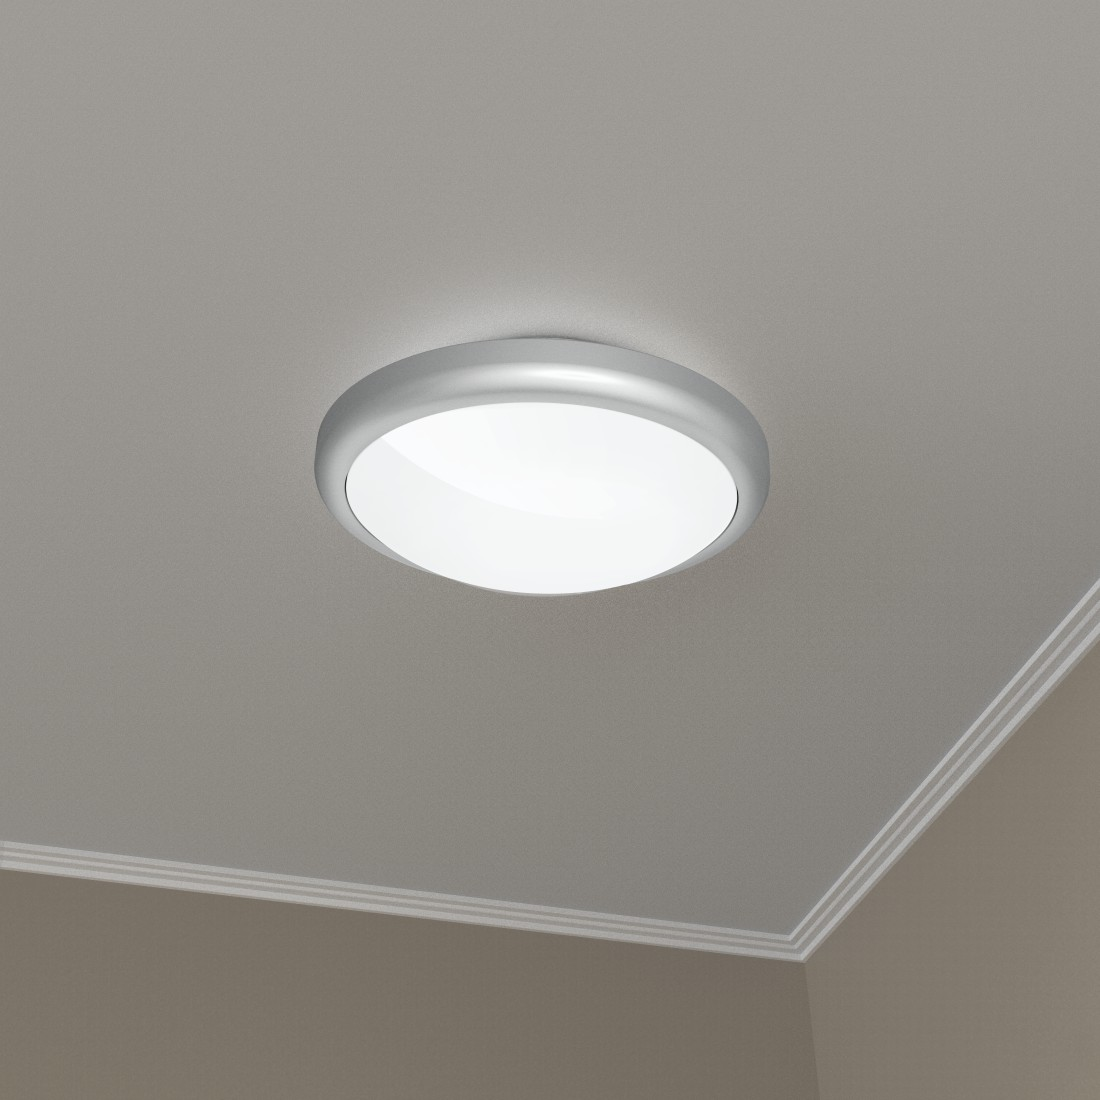 "awx5 High-Res Appliance 5 - Hama, ""Design"" Smart Home Ceiling Light, without Hub, Voice / App Control, metal"